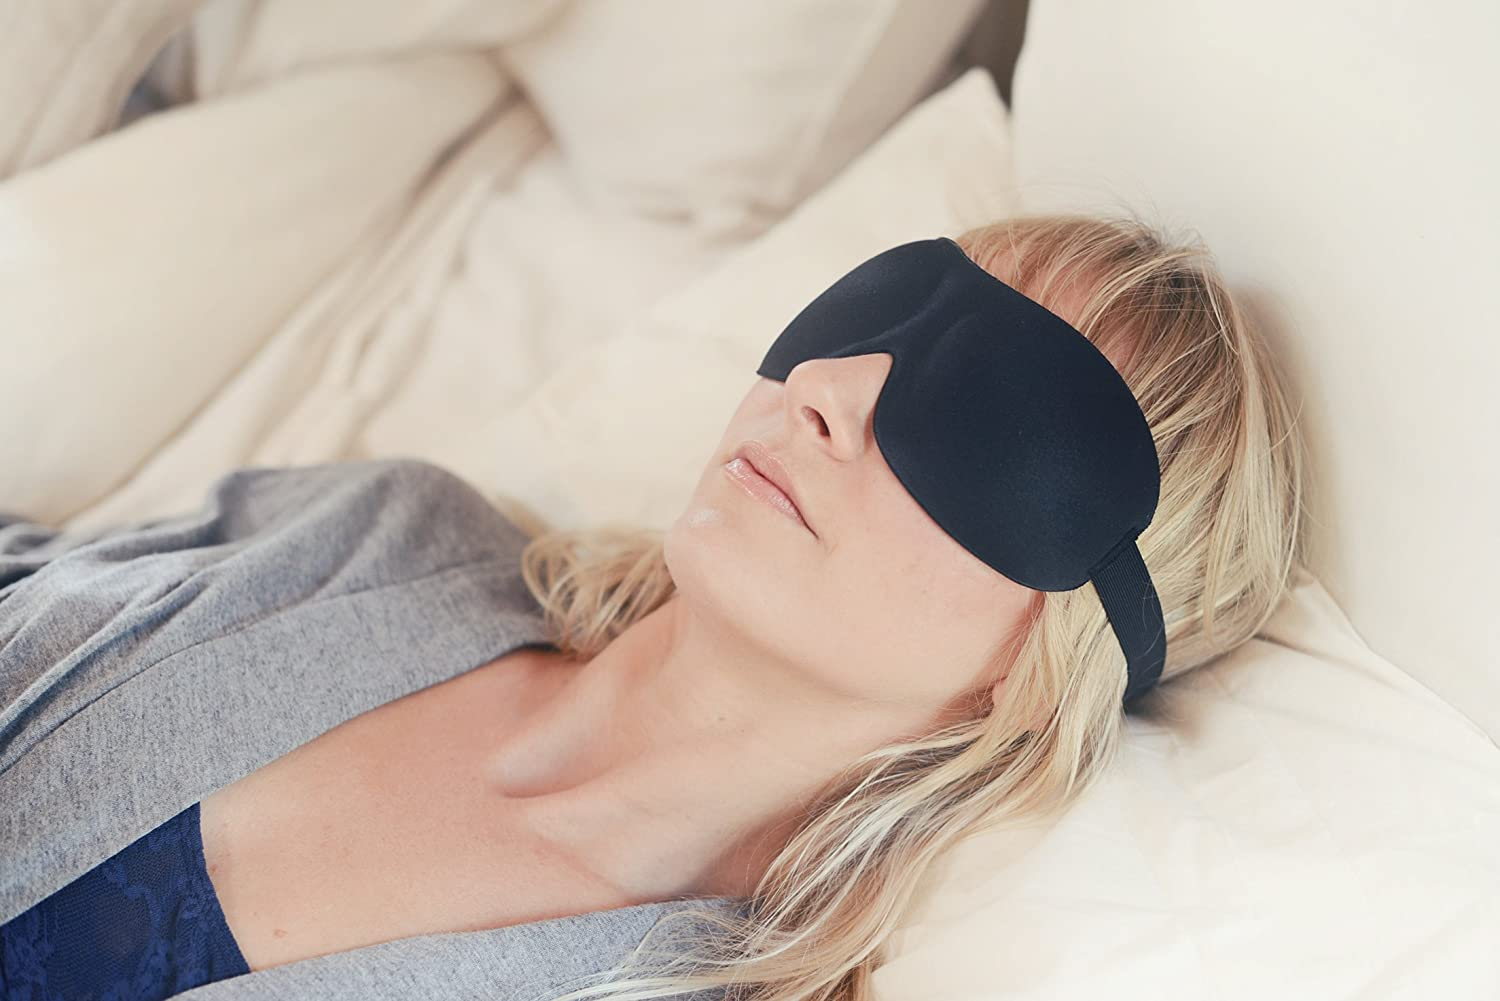 #1 Rated Patented Sleep Mask - Premium Quality Eye Mask with Contoured Shape By Nidra - Ultra Lightweight & Comfortable - Great for Travel, Shift Work, Meditation, Migraines - Sleep Satisfaction Guaranteed – Adjustable Head Straps - Sleep Anywhere Anyt